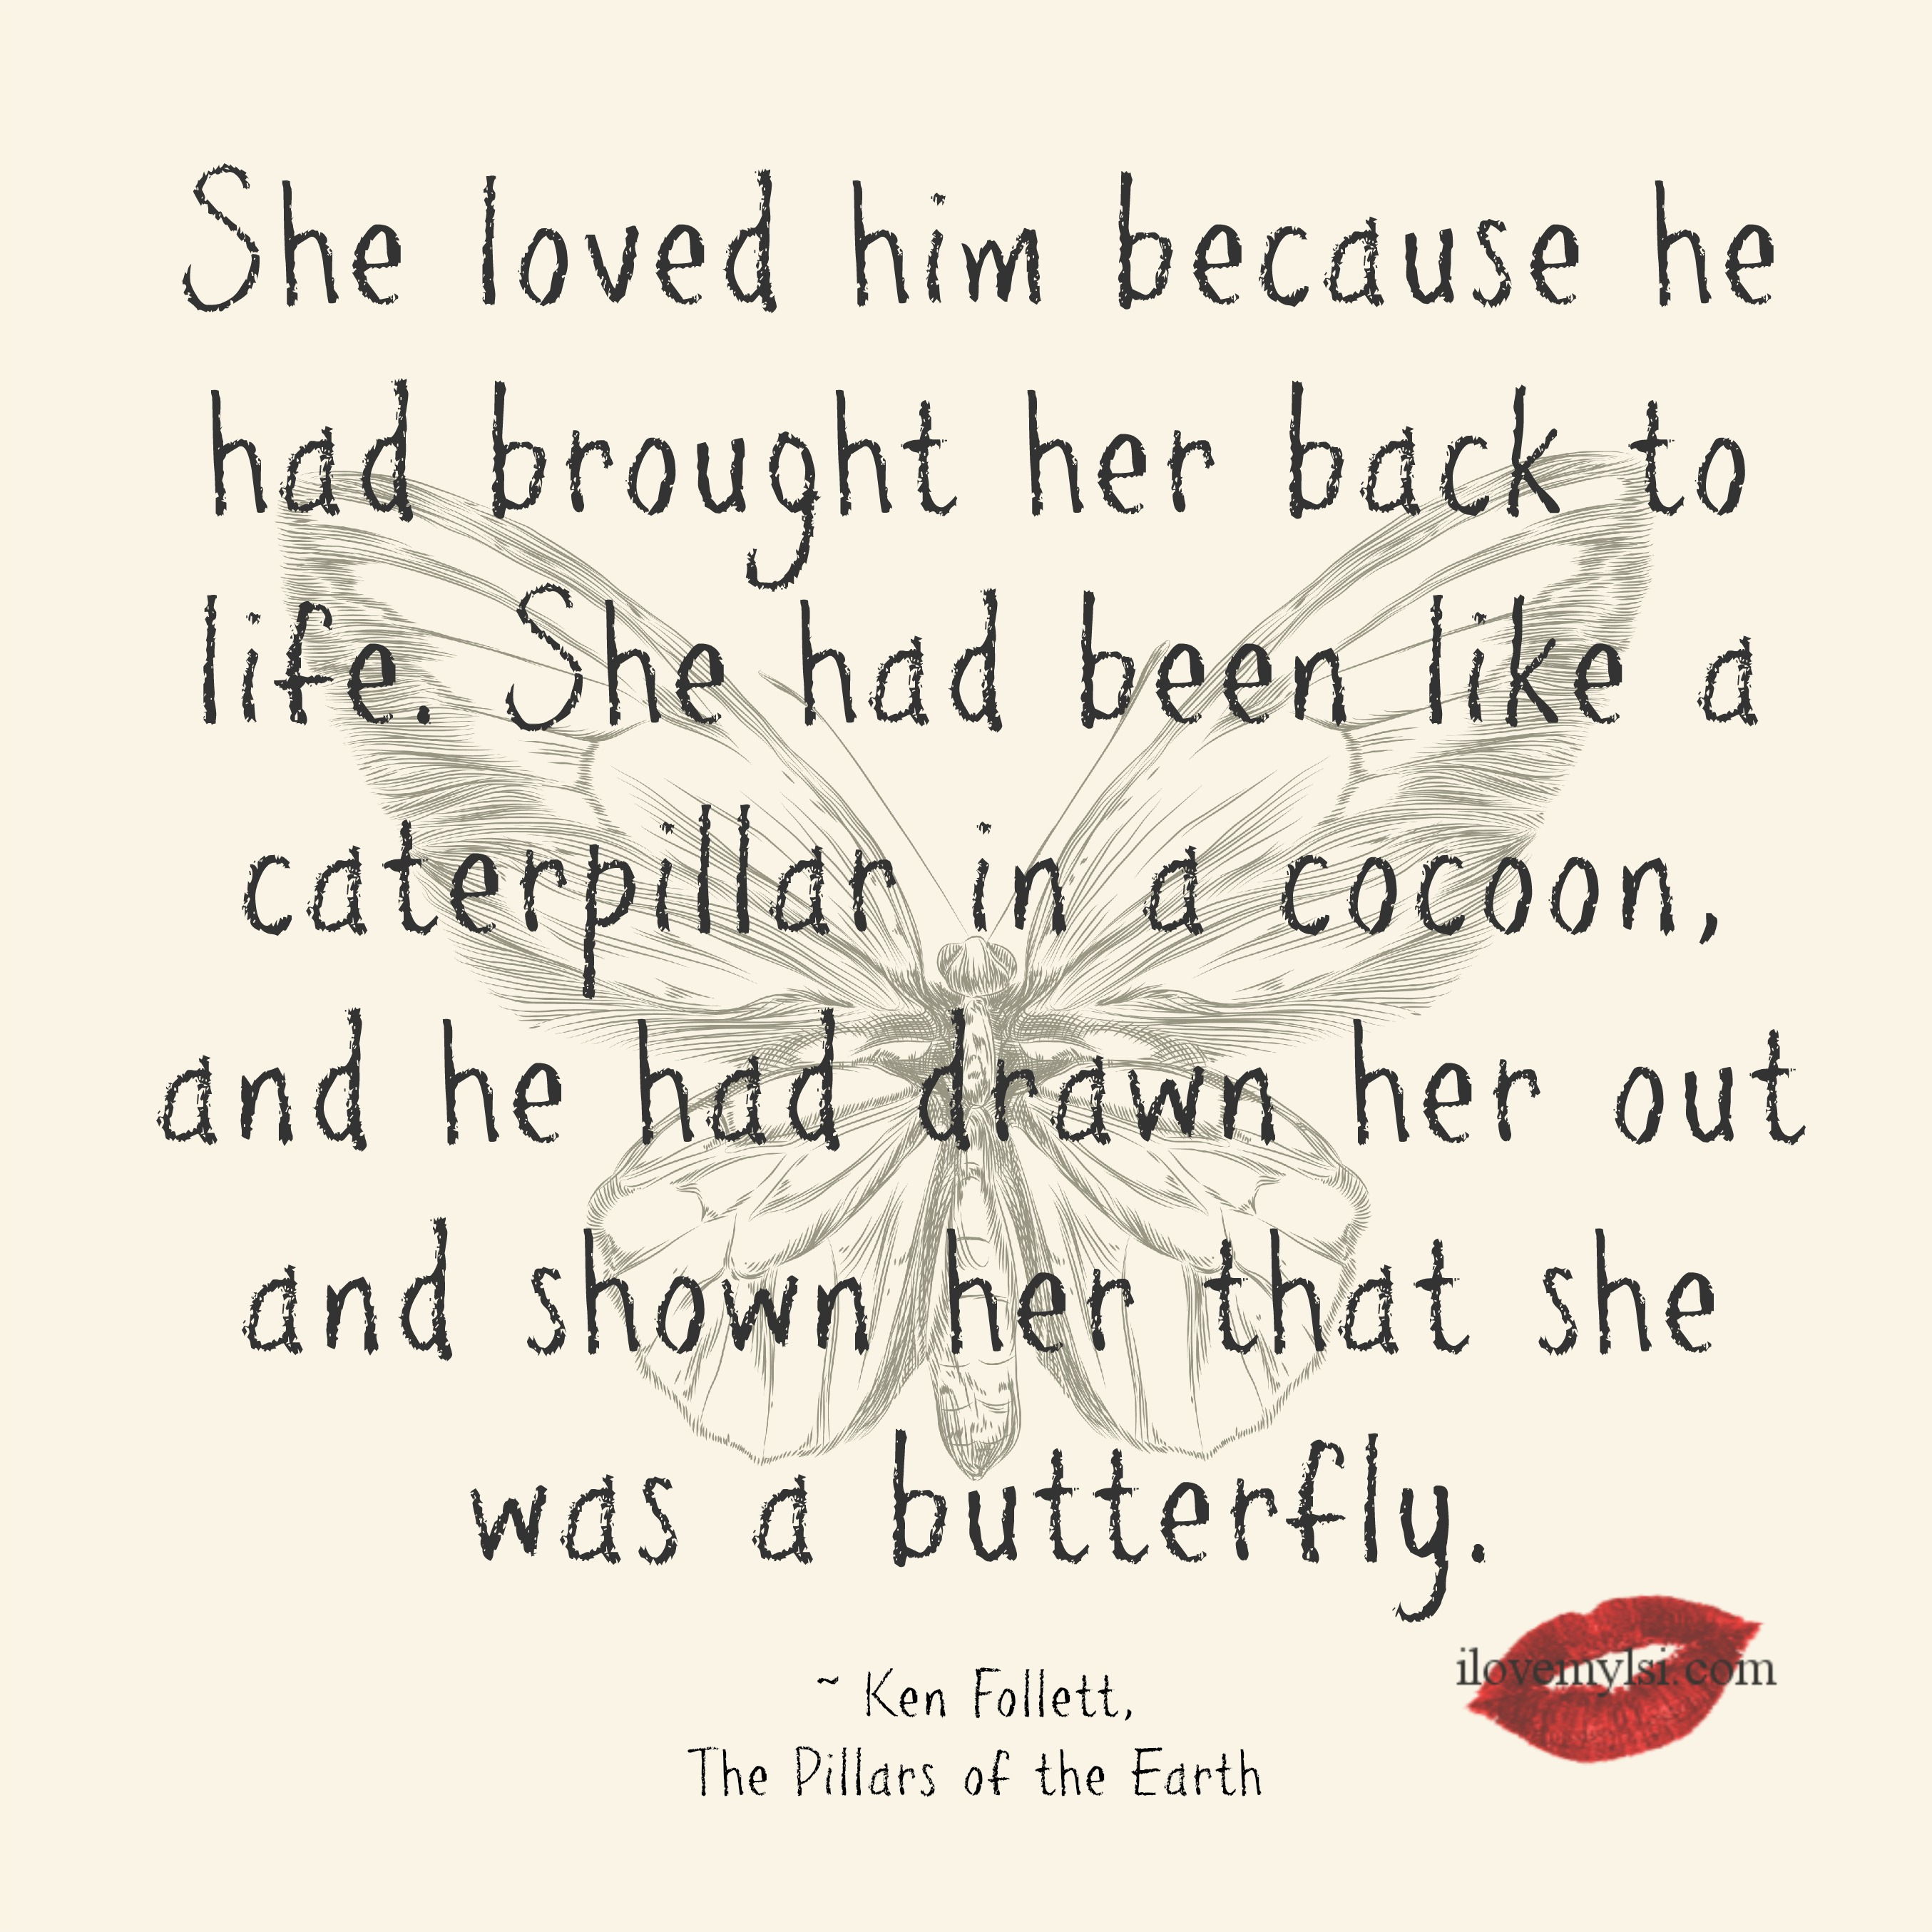 Love Quotes On Life The 25 Most Romantic Love Quotes You Will Ever Read Page 24 Of